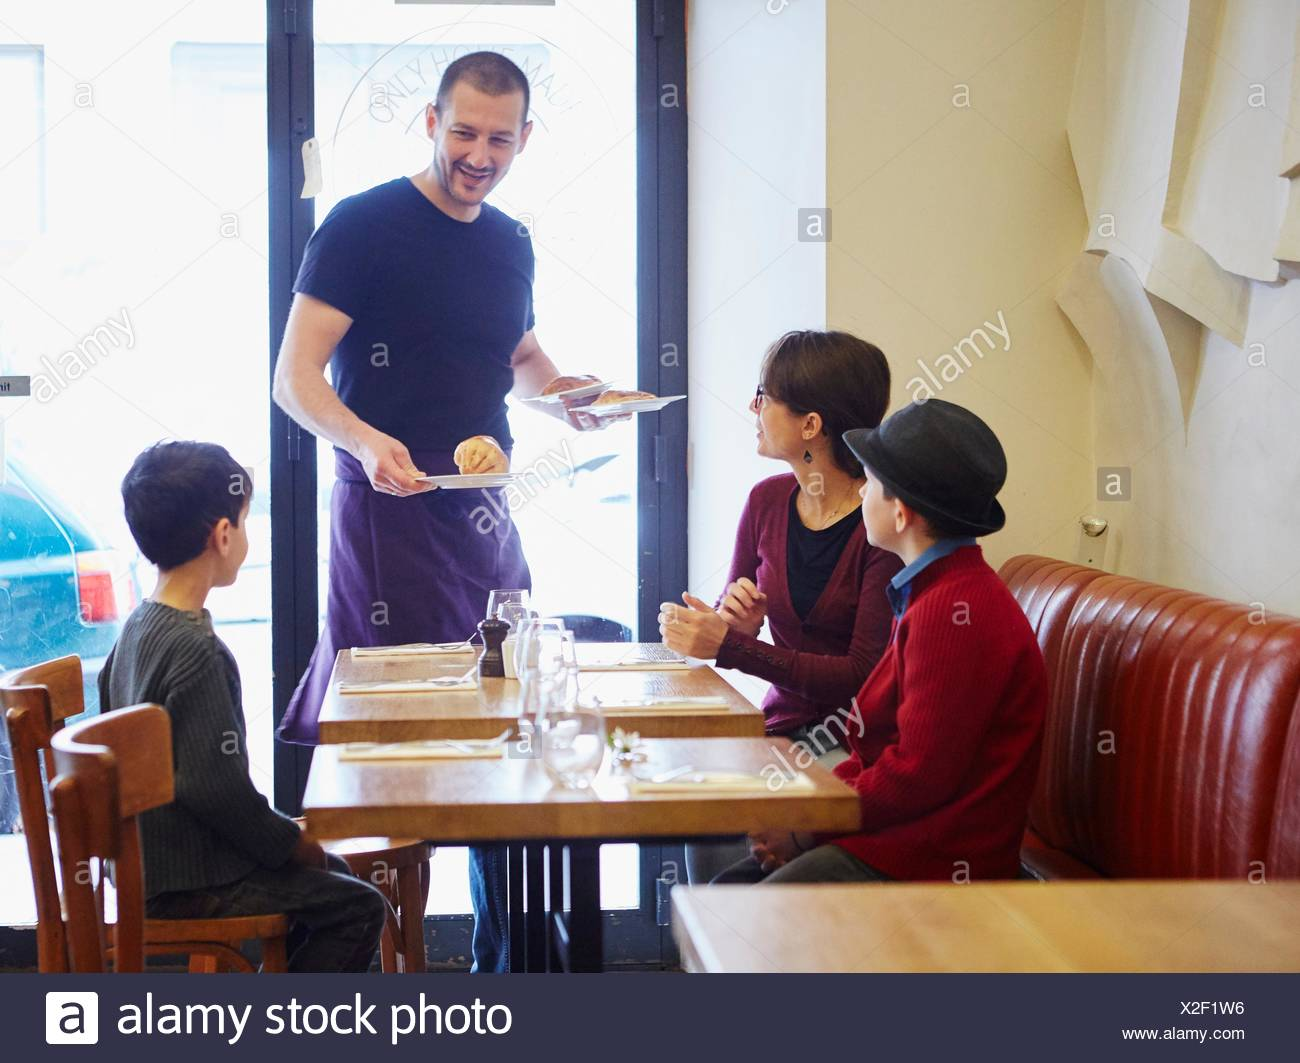 Waiter serving lunch in restaurant to woman and sons - Stock Image